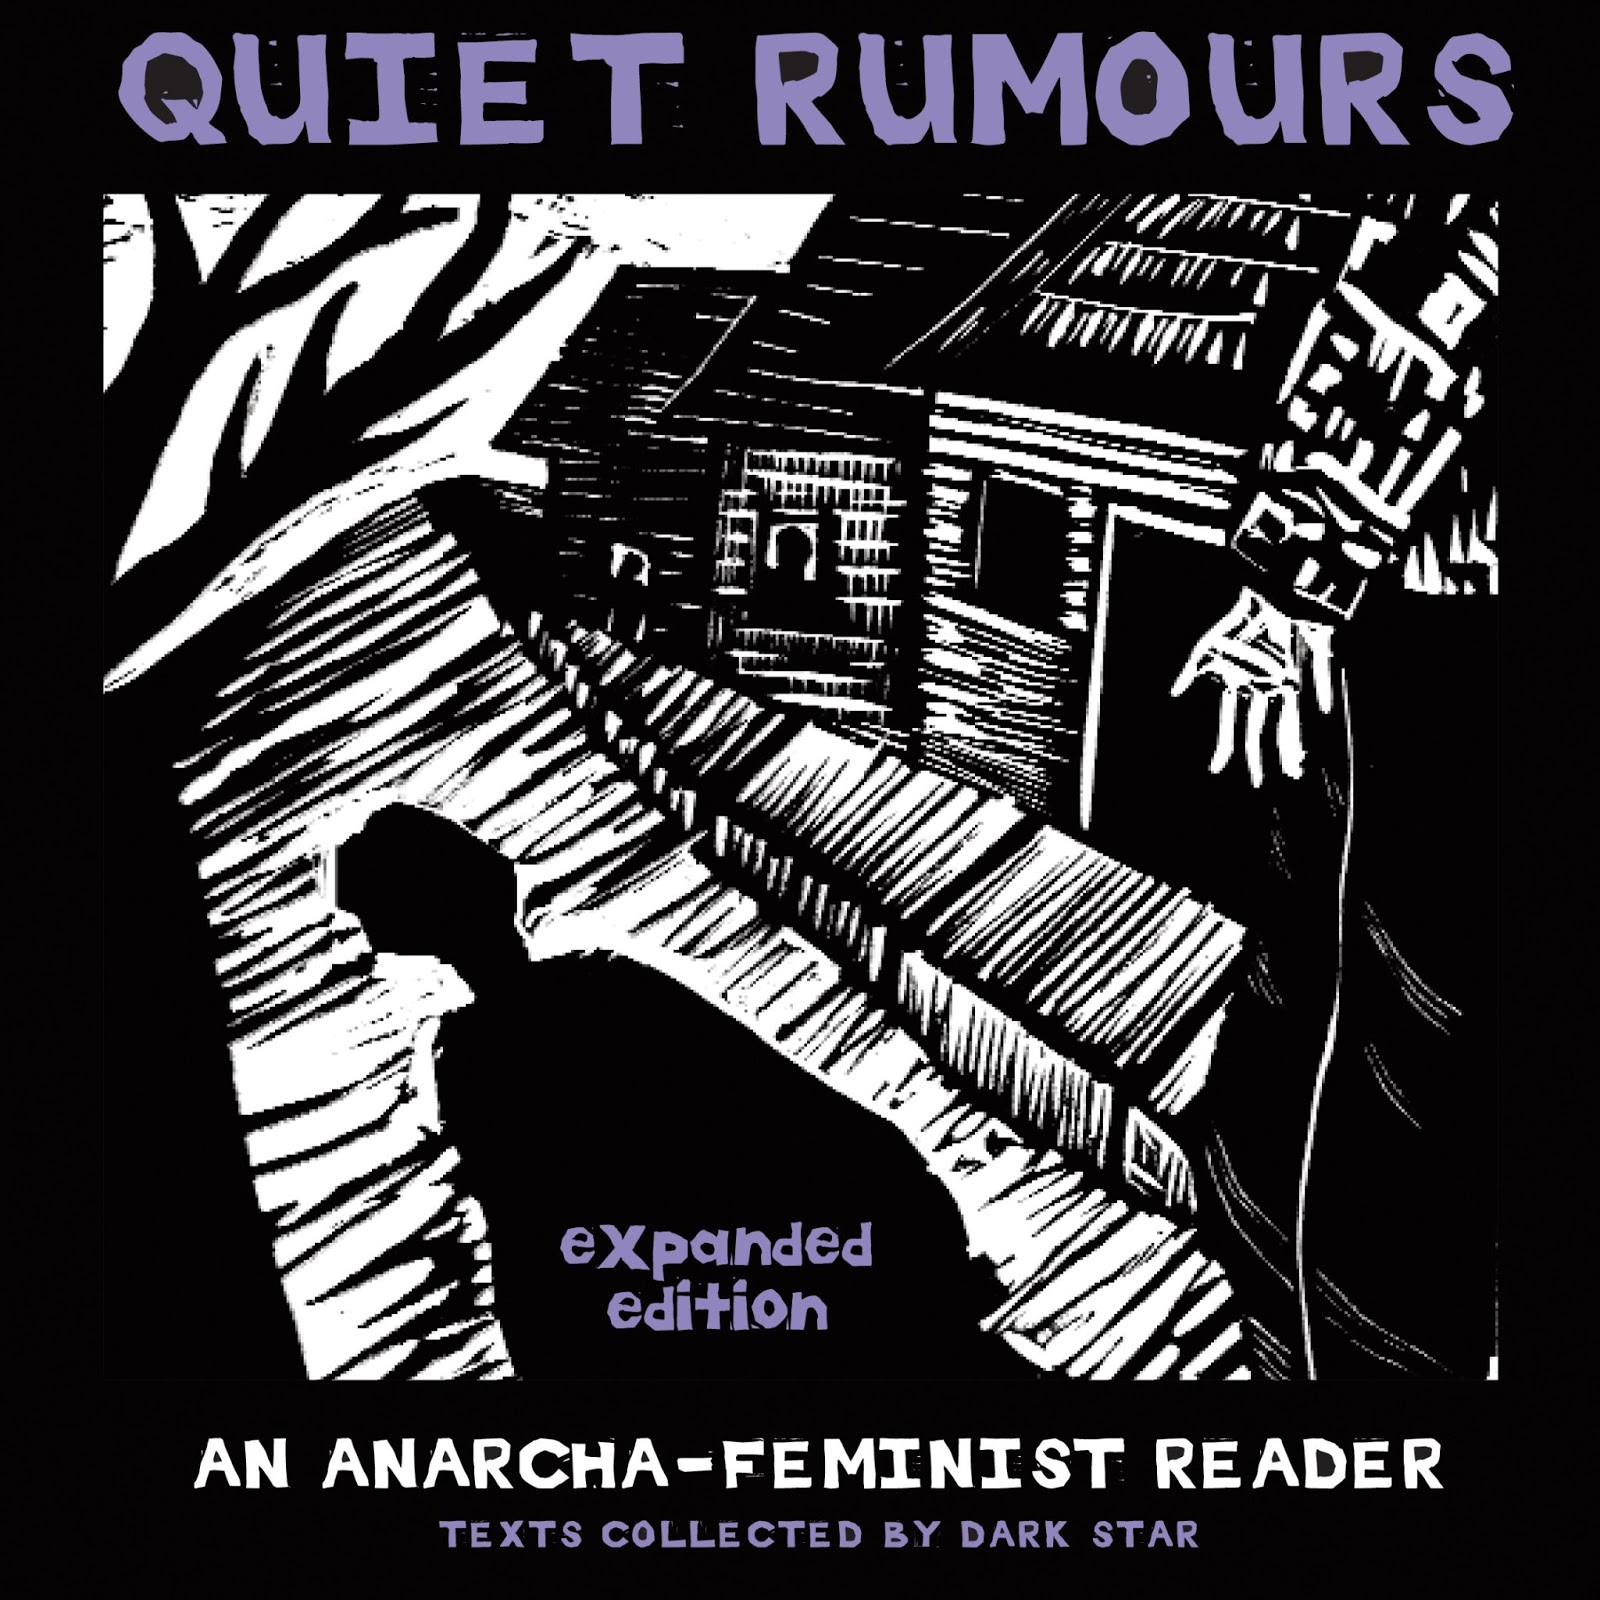 rag revolutionary anarcha feminist group you have often wondered what is anarcha feminism and we hope this short essay will give you an idea